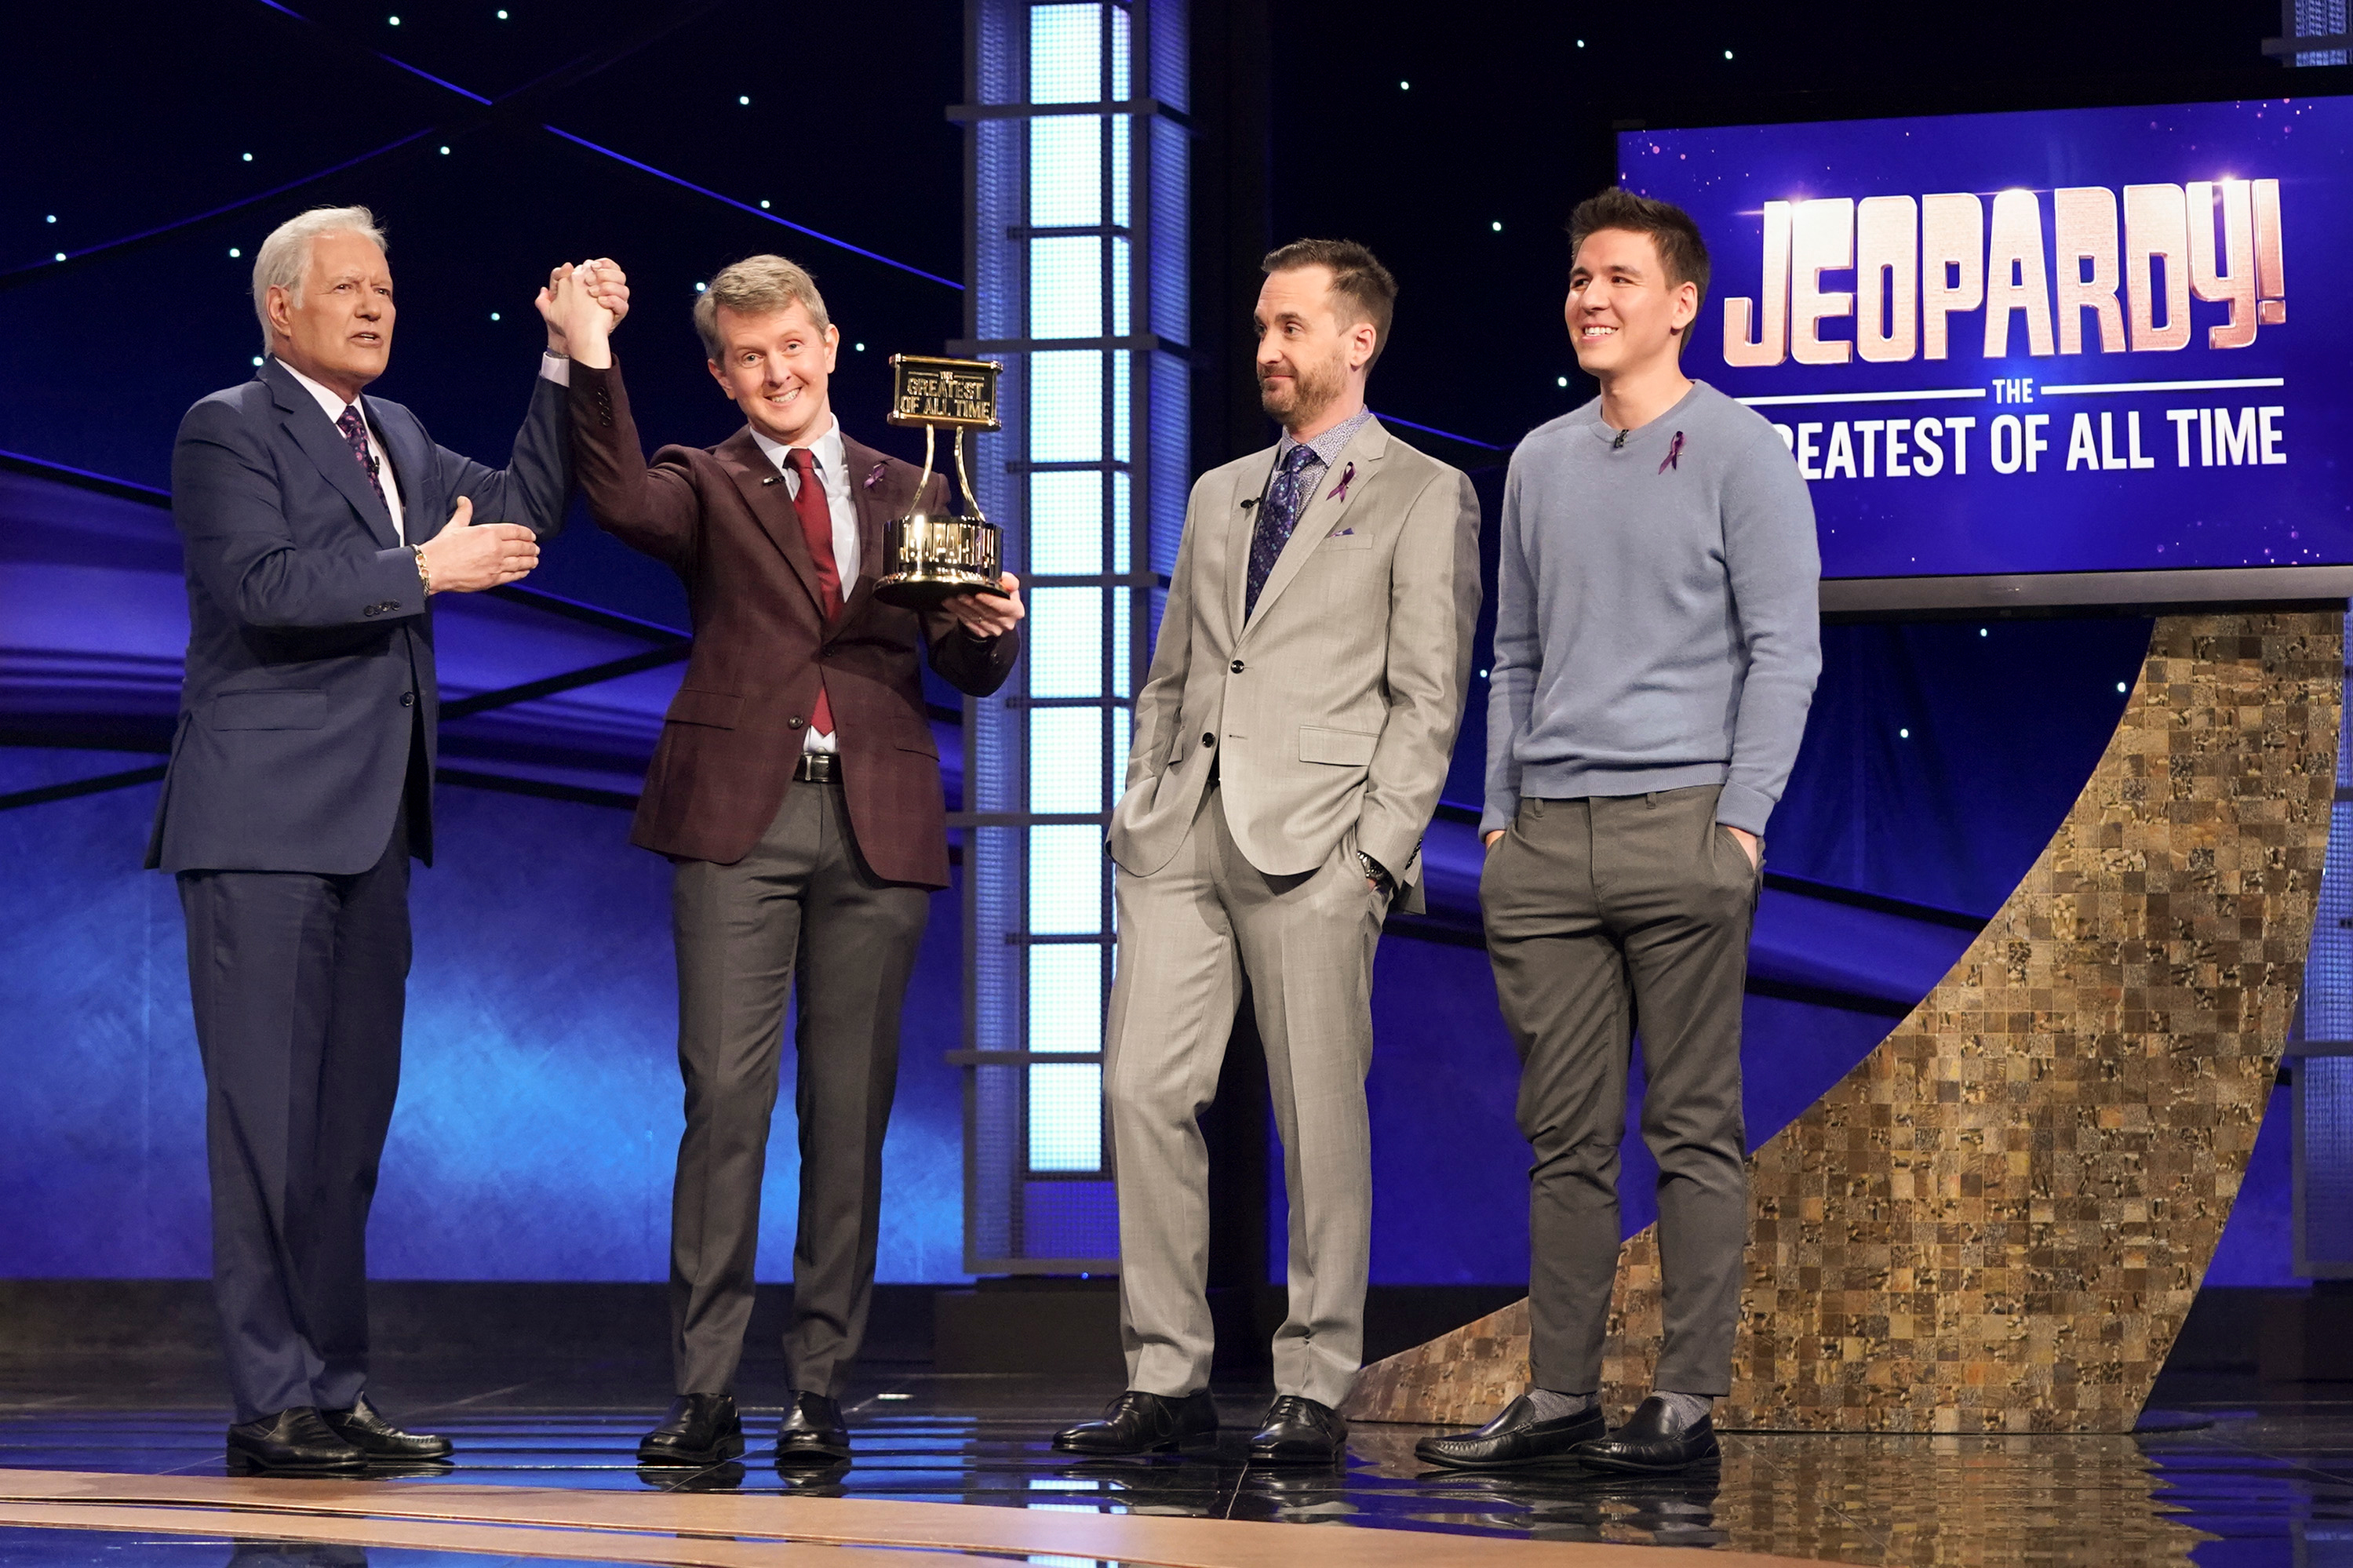 'Jeopardy! Alex Trebek ABC Sony Pictures Television Nielsen Ratings Ken Jennings Brad Rutter McDonald's Target Katy Perry Ryan Seacrest James Holzhauer 'Monday Night Football'